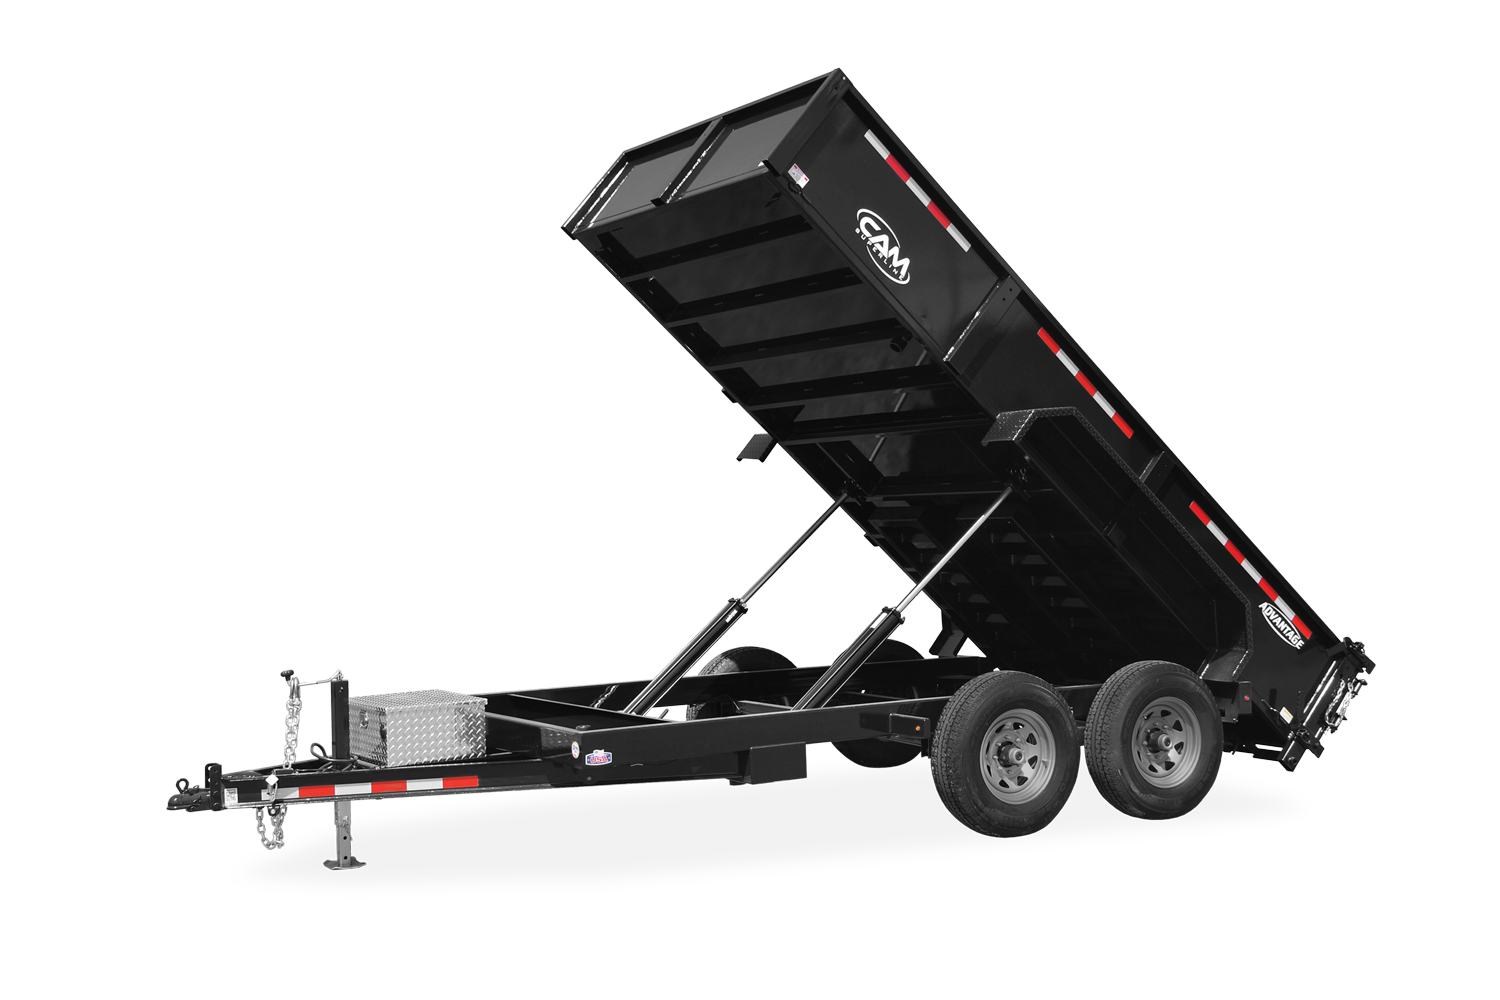 "2021 Cam Superline 6 Ton 81.5"" wide x 12' Long Advantage HD Low Profile Dump Trailer"